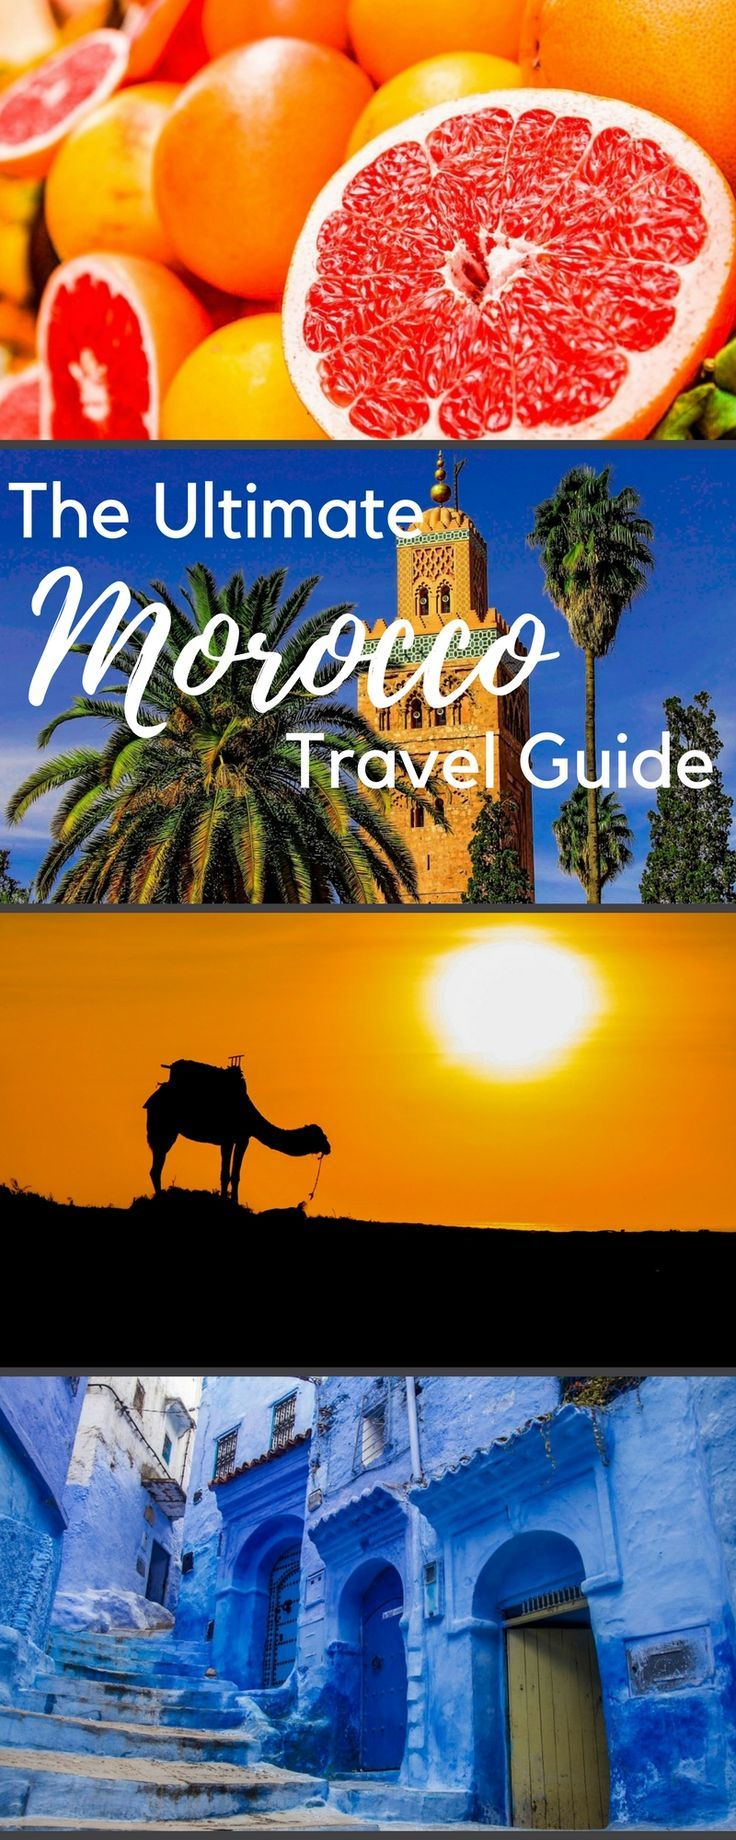 All you need to know about travel in Morocco. Including things to do, budget advice, food suggestions. Info on Chefchouen, Marrakech, Casablanca, Fez, Tangier and all the beaches and surf around!